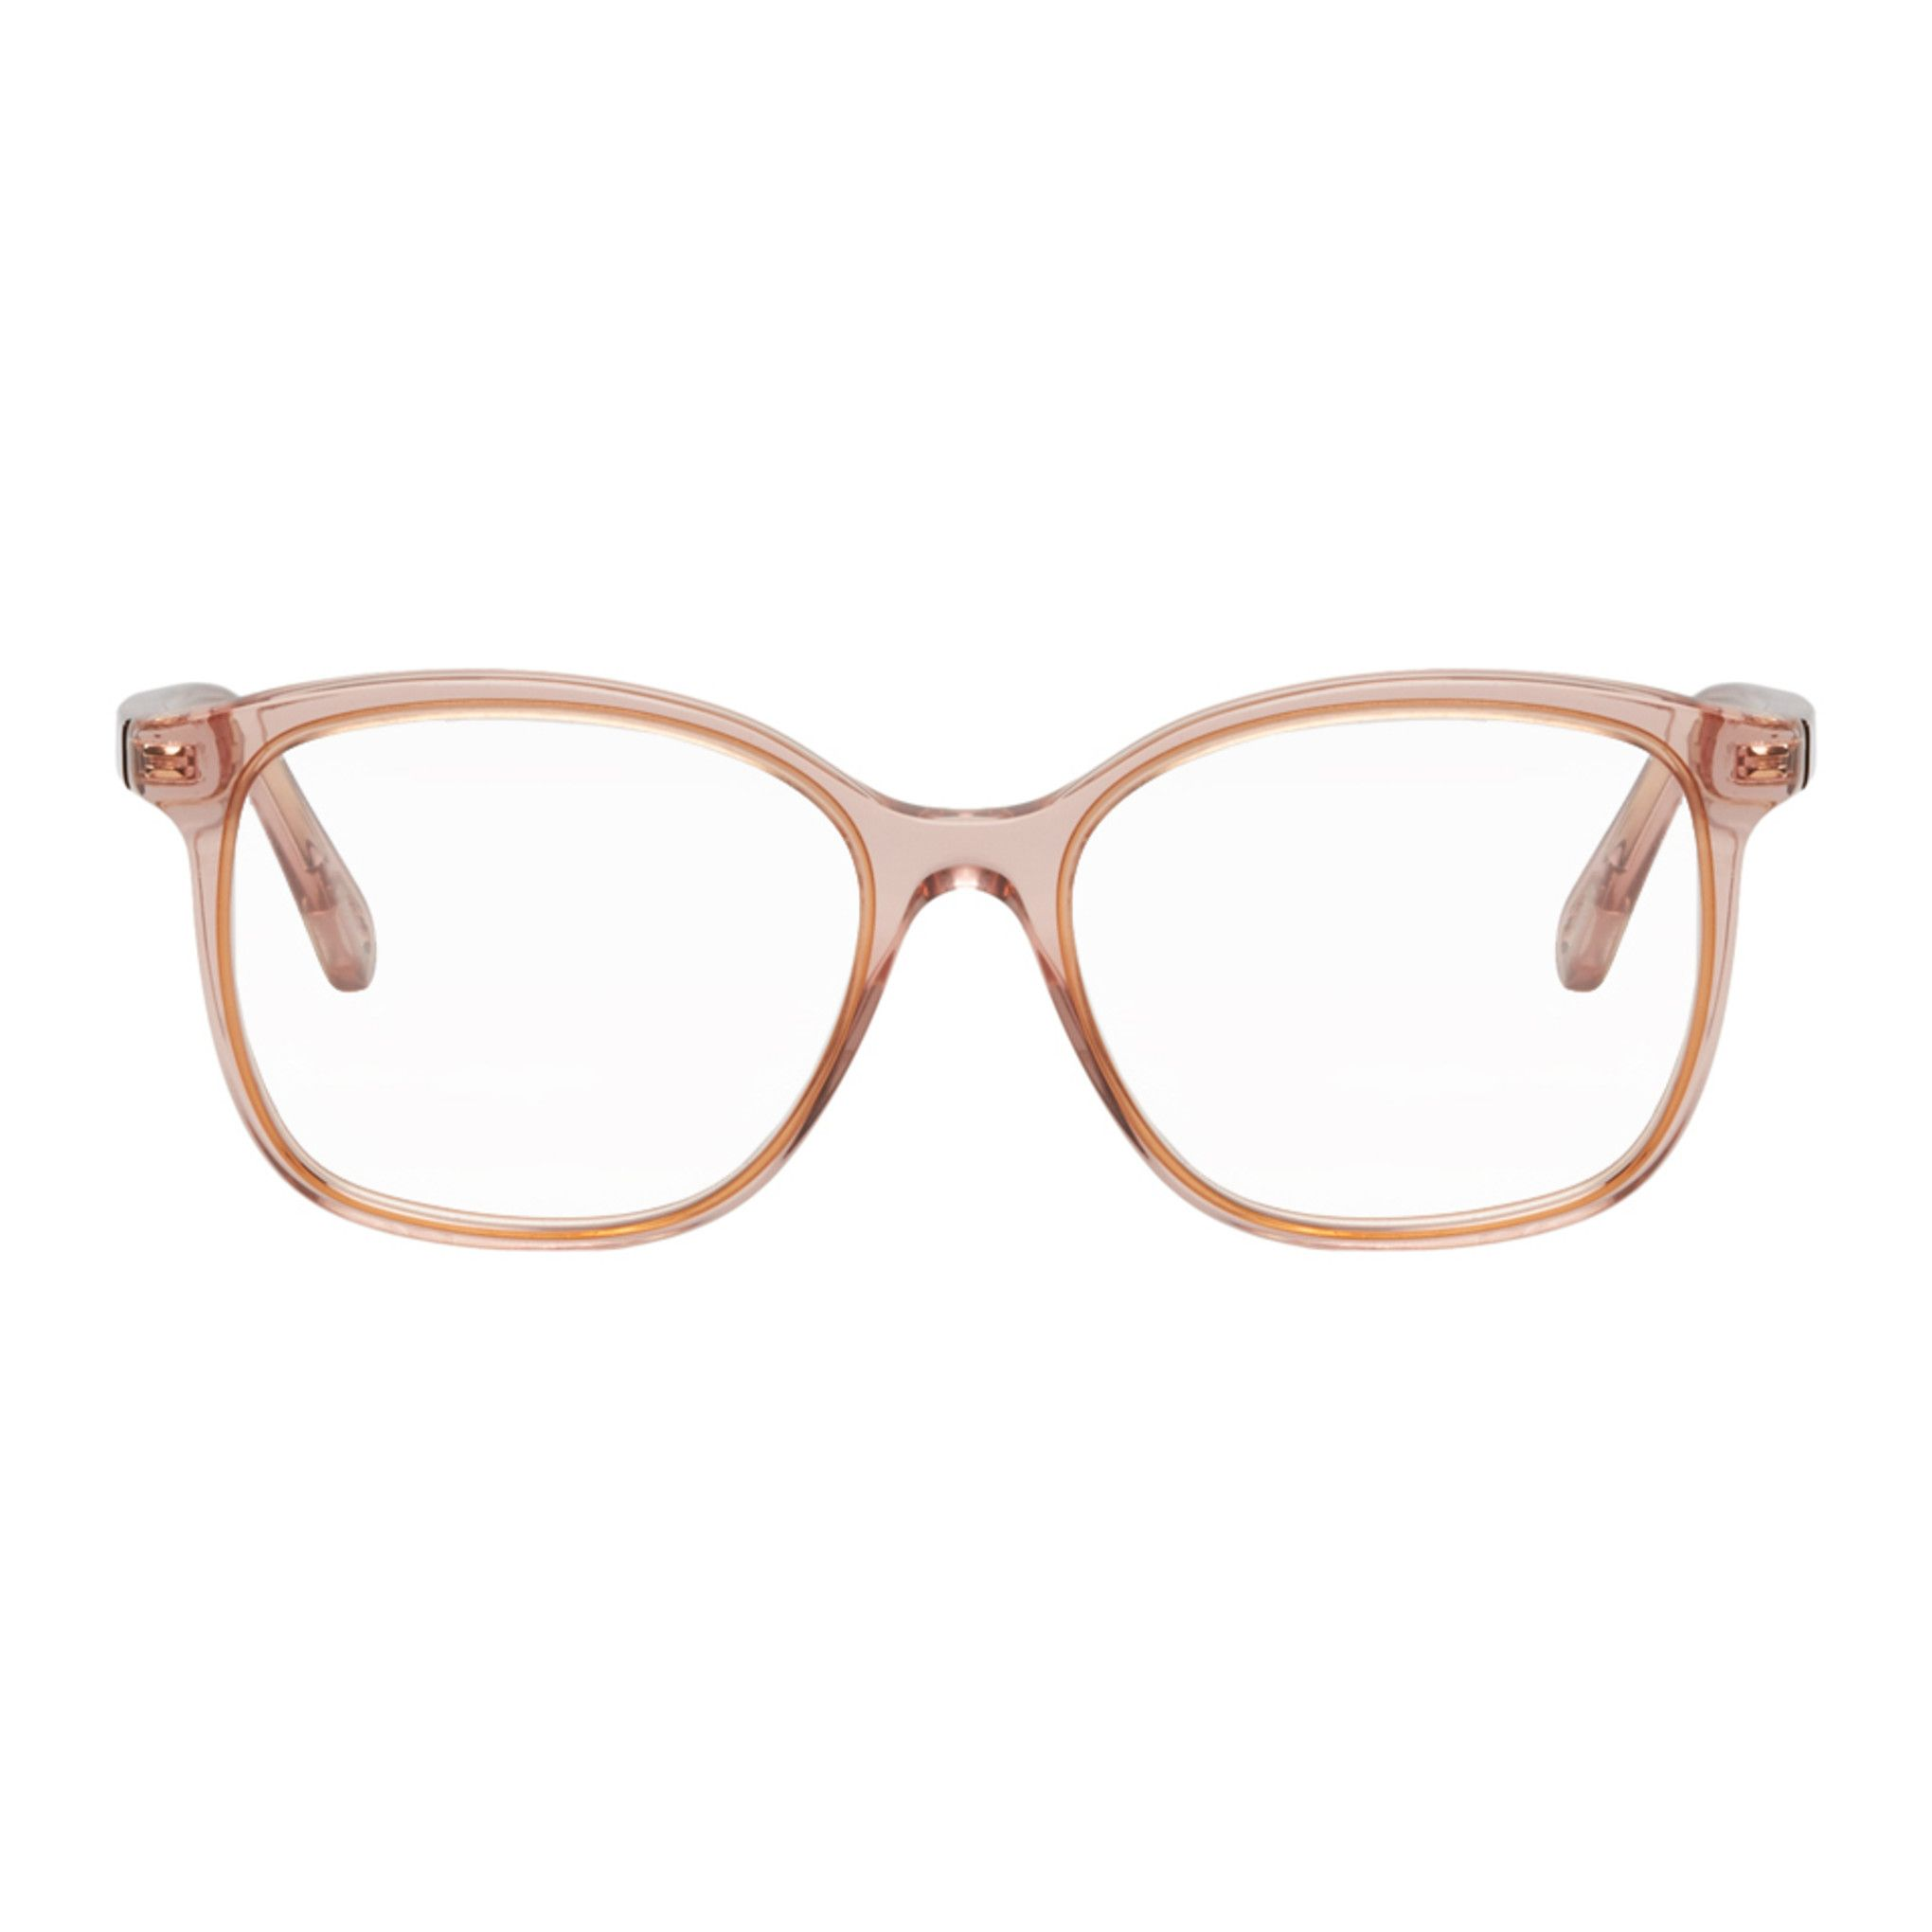 bffcd3b968e Chloé - Pink Transparent Acetate Glasses